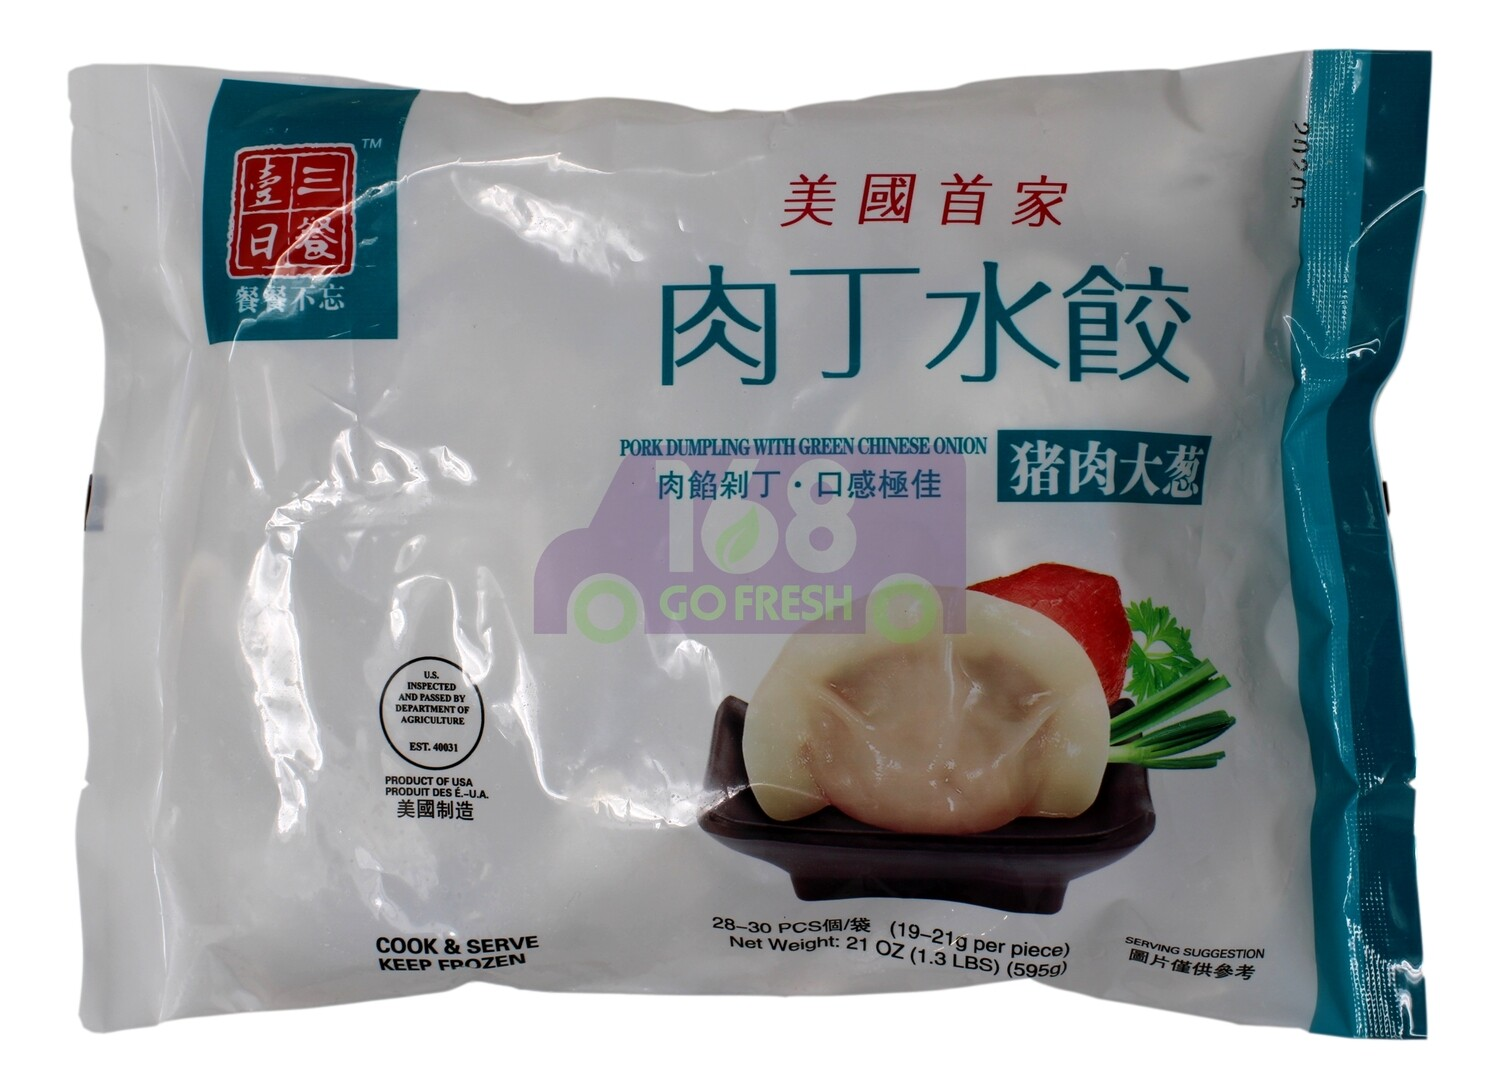 Pork Dumplings with GREEN CHINESE ONION 一日三餐 肉丁水饺 猪肉大葱(21OZ)